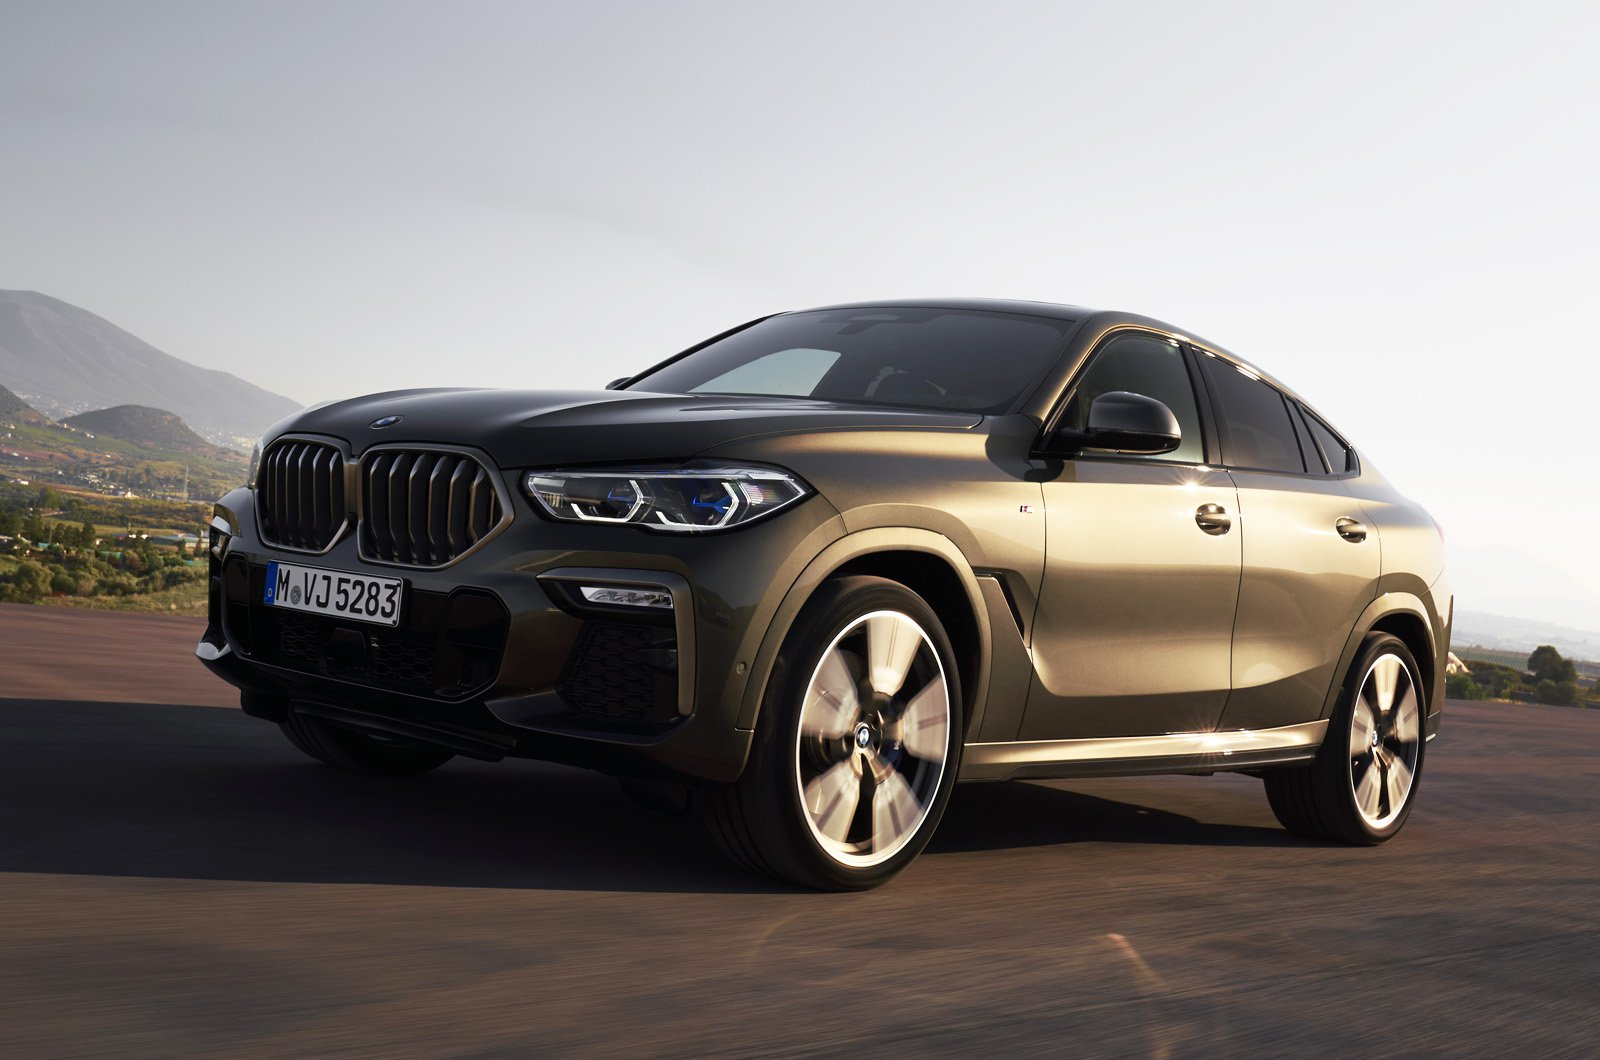 2020 BMW X6 front